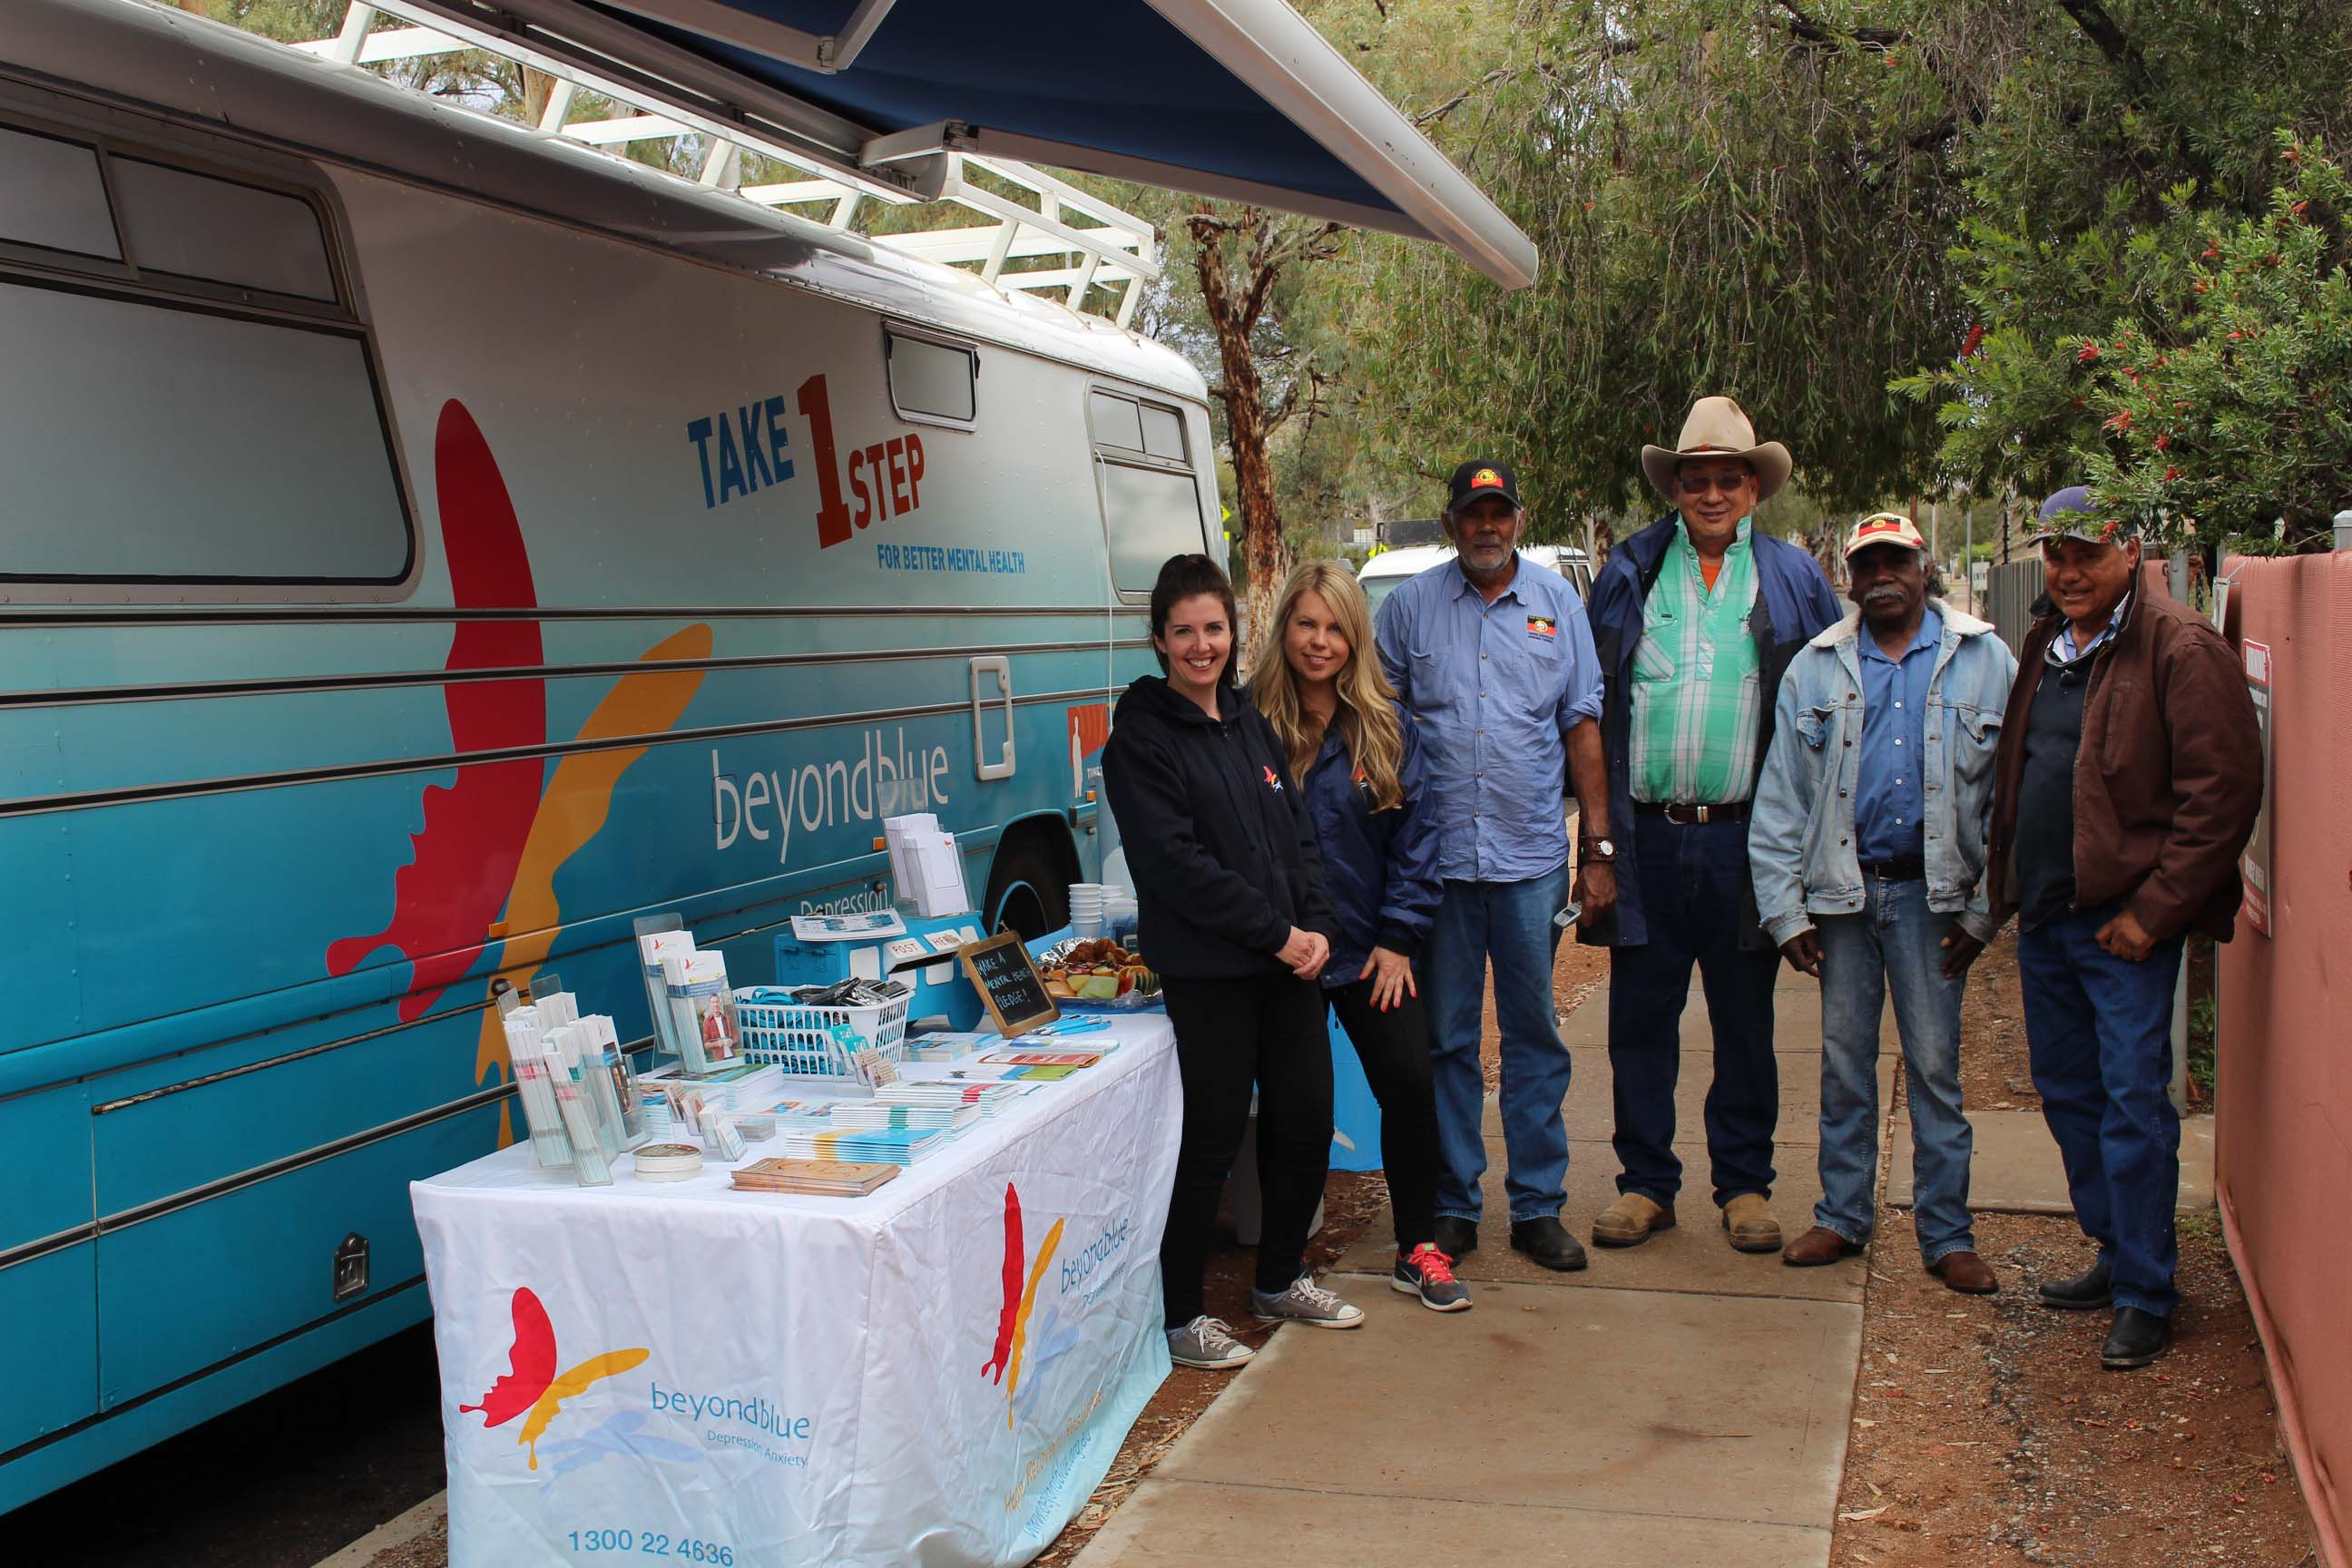 Parked out the front of Ingkintja Men's Health Shed in Alice Springs: NT.